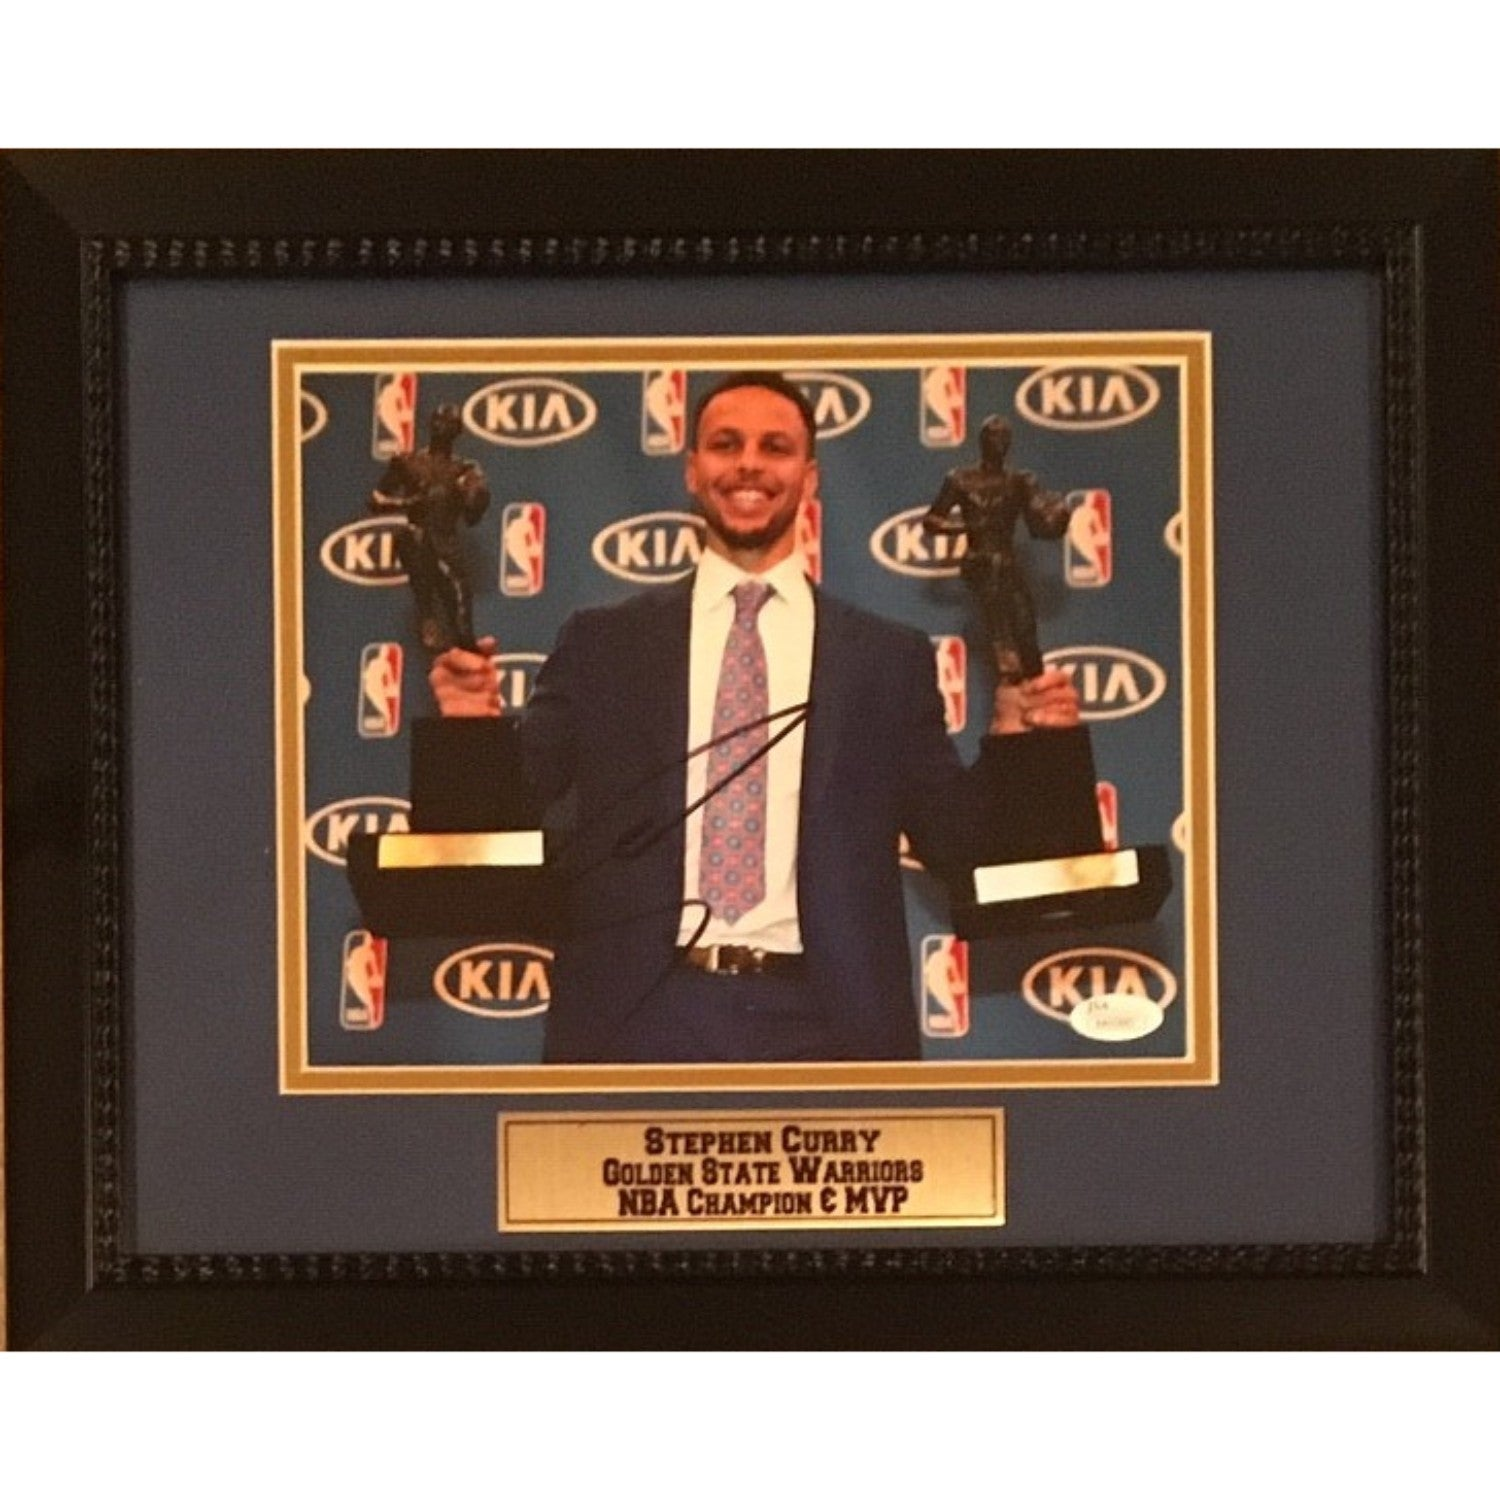 Stephen Curry Autographed Golden State Warriors Signed NBA Champion MVP 8x10 Framed Basketball Photo JSA COA 3-Powers Sports Memorabilia